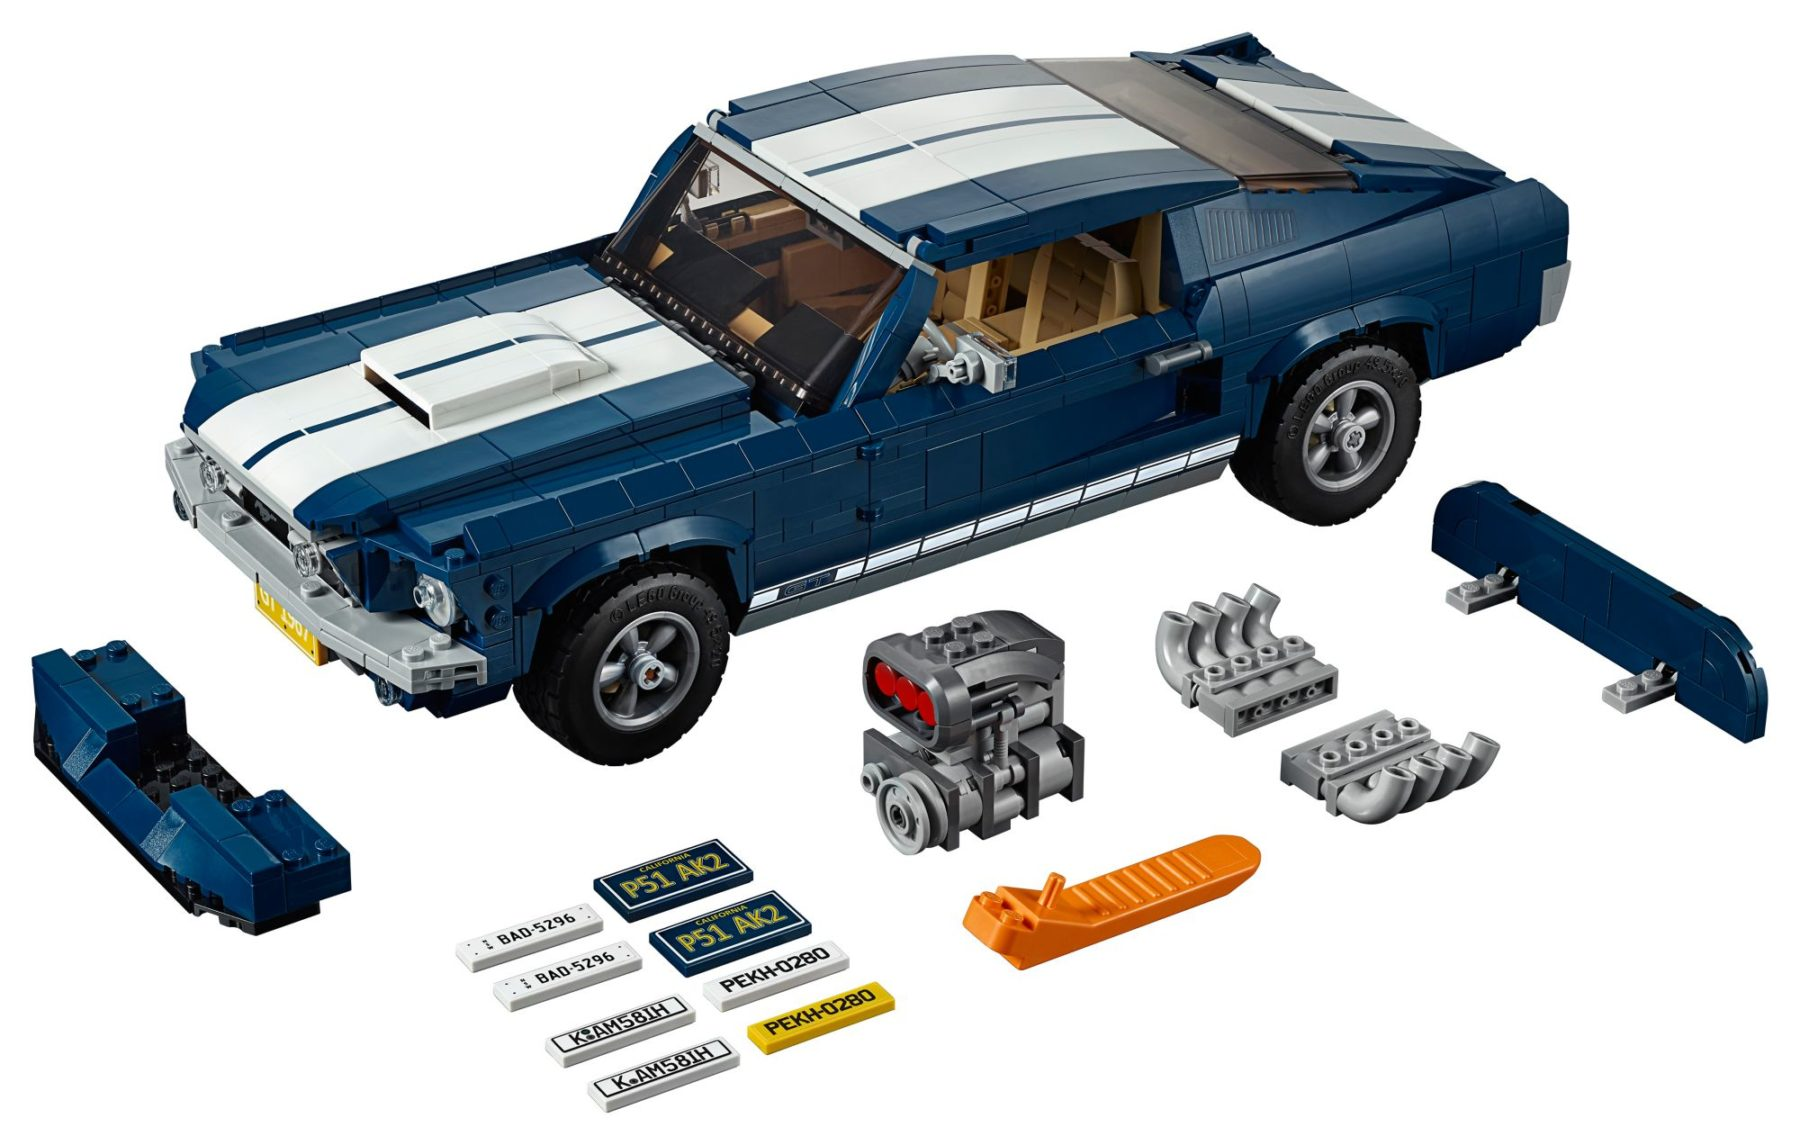 LEGO 10265 Ford Mustang GT Teile